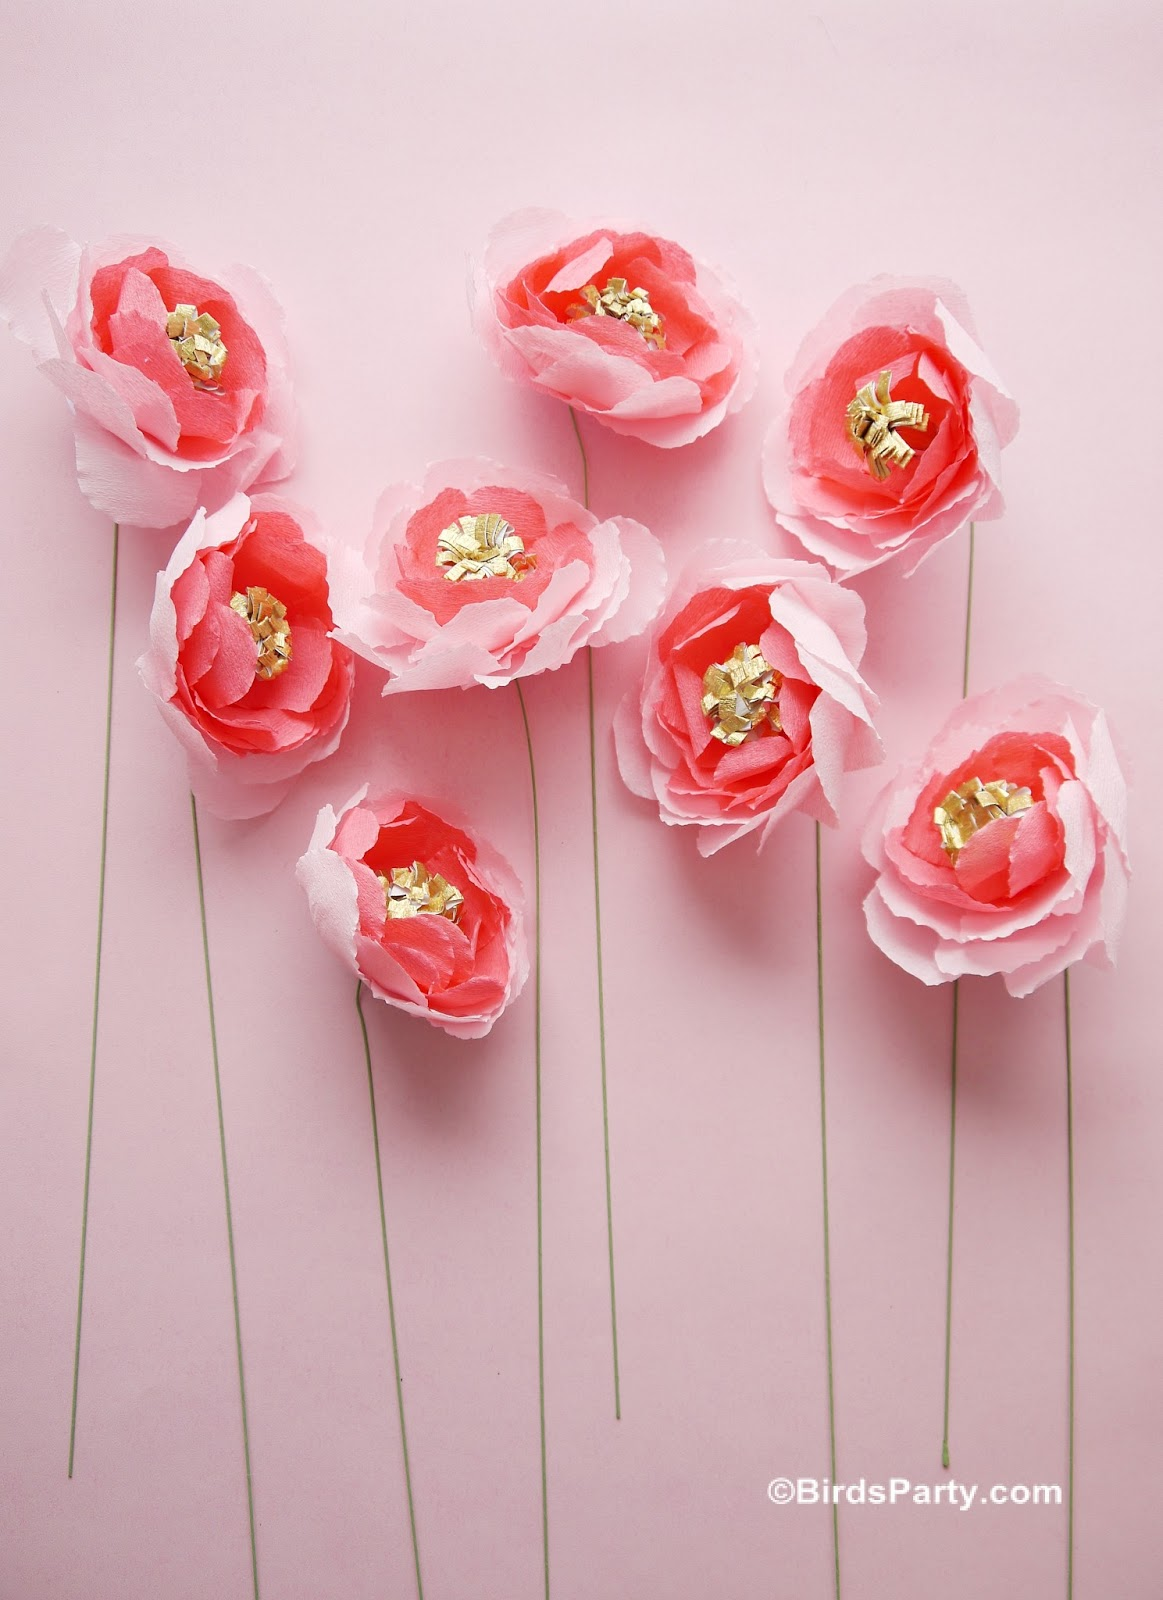 Diy crepe paper flowers bouquet party ideas party printables diy crepe paper flowers bouquet mightylinksfo